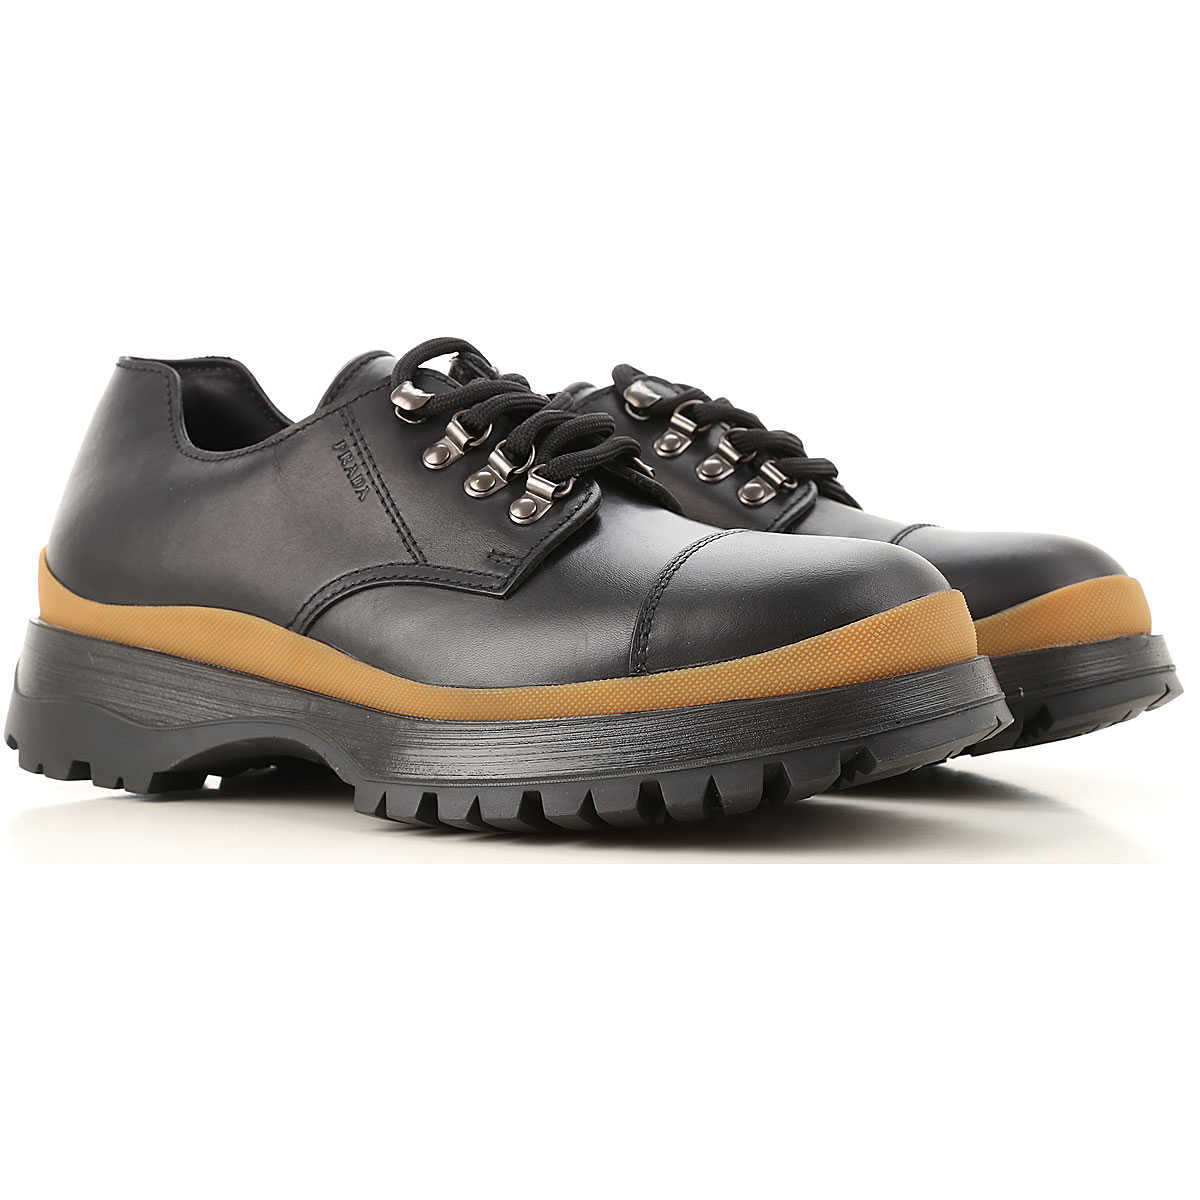 Prada Lace Up Shoes for Men Oxfords 10 6 7 7.5 8 9 Derbies and Brogues On Sale UK - GOOFASH